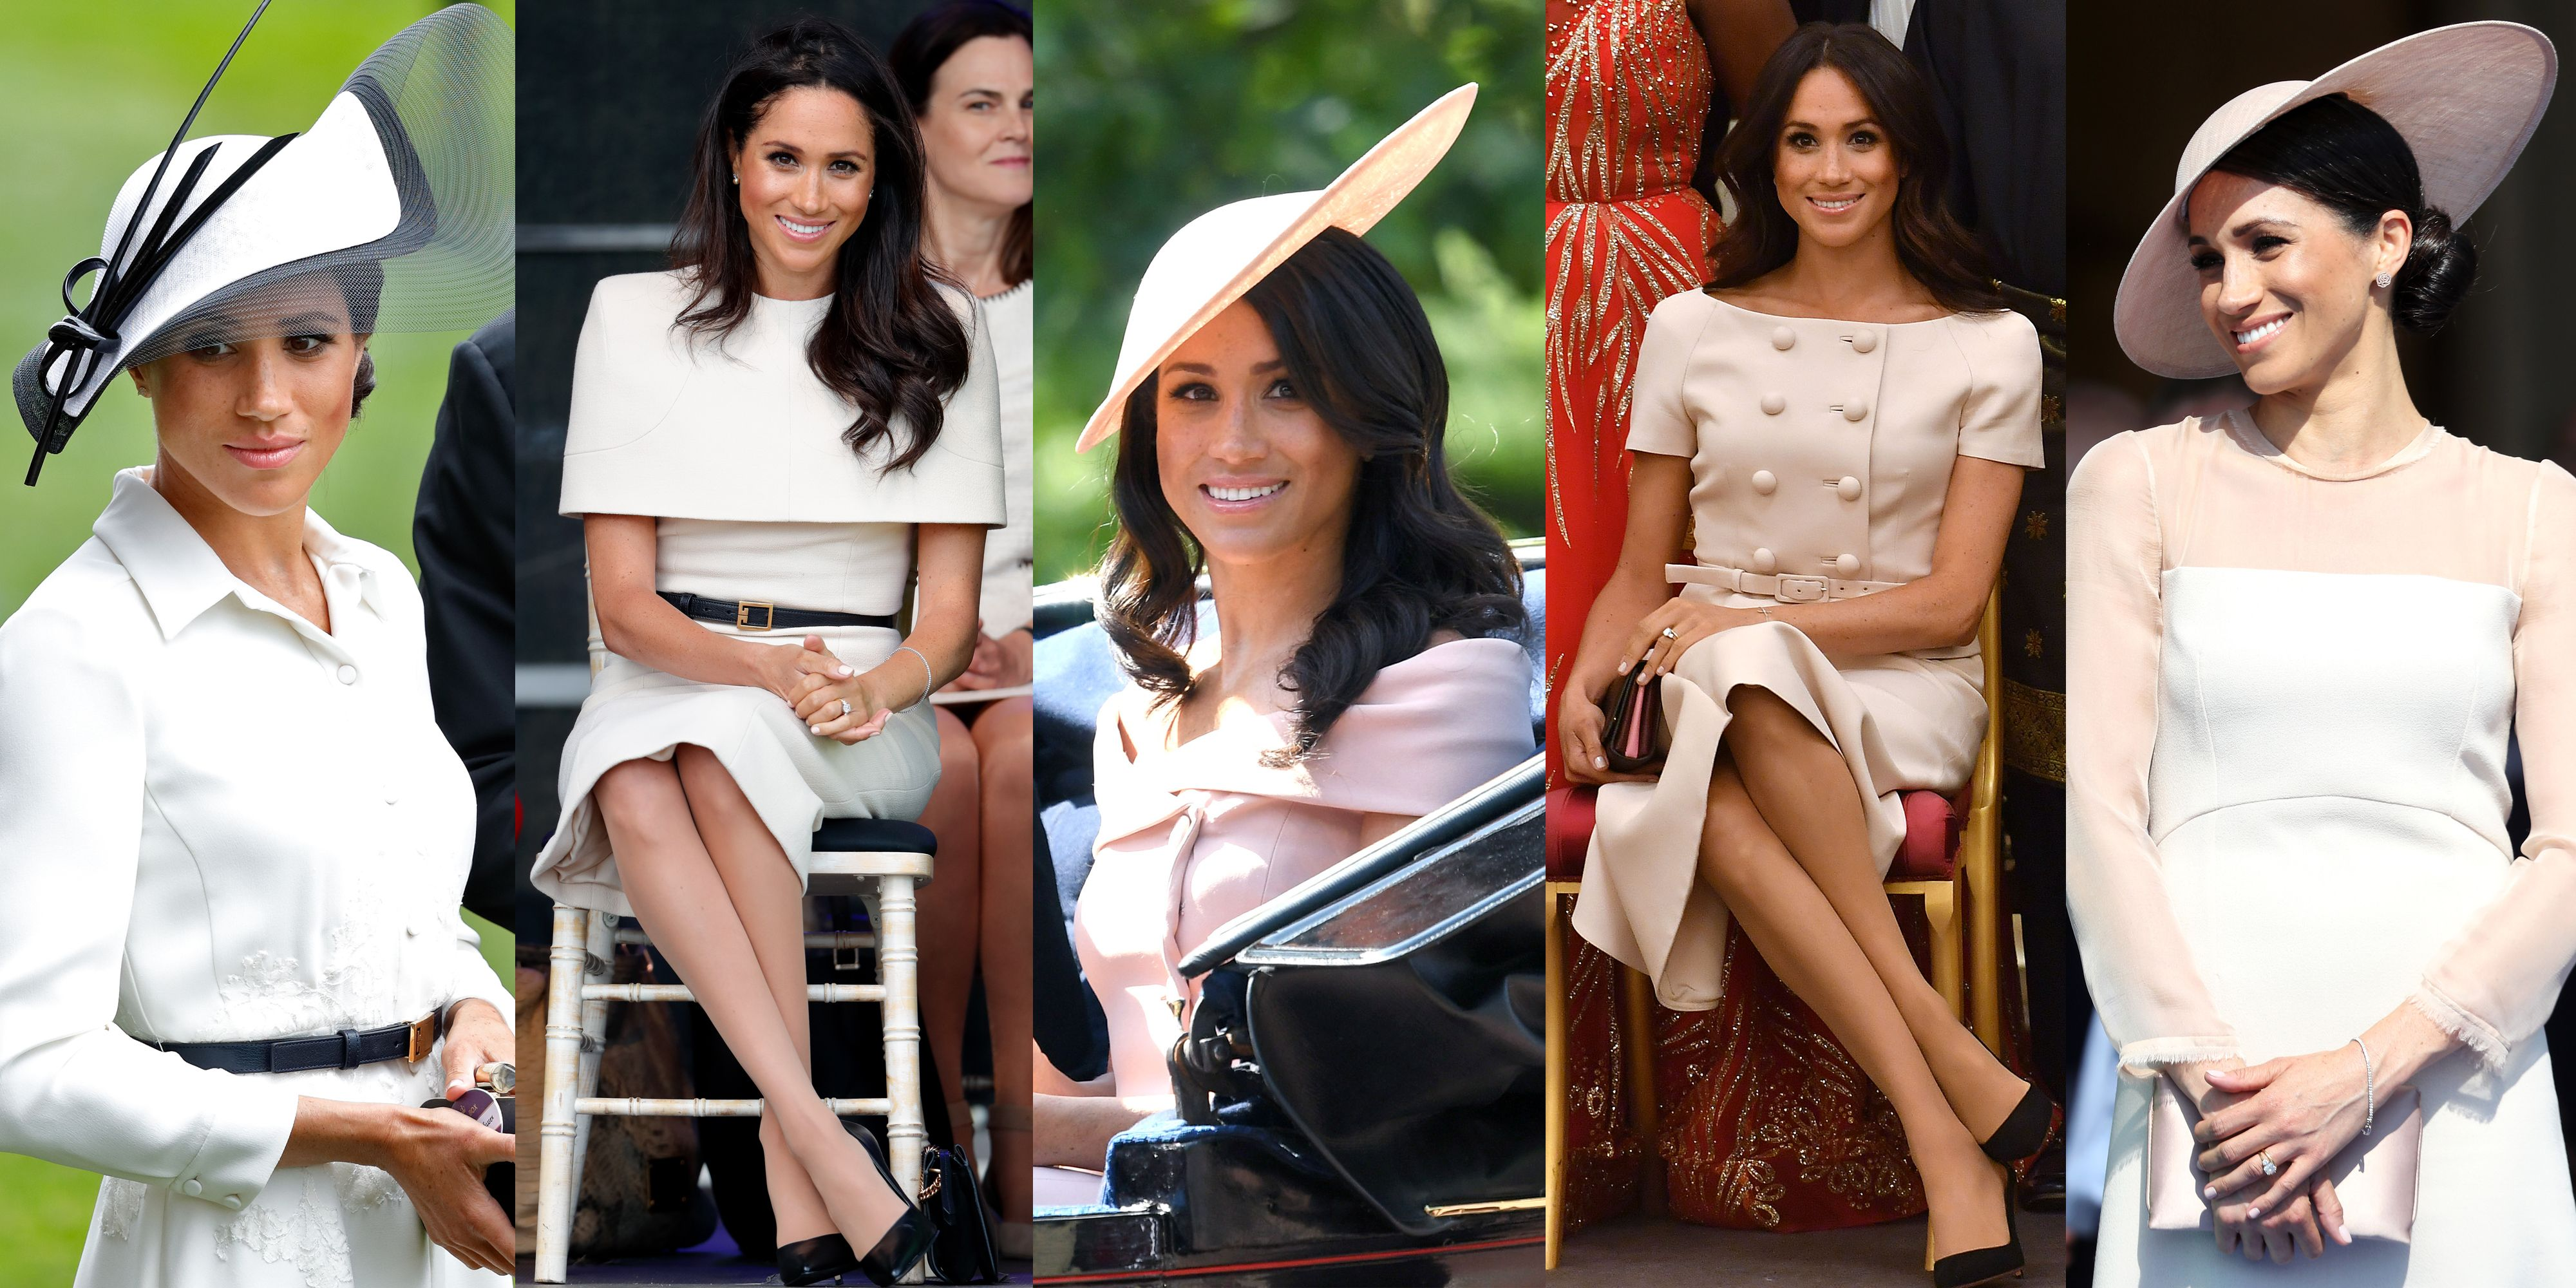 The Very British Reason Meghan Markle Keeps Wearing Blush and Beige